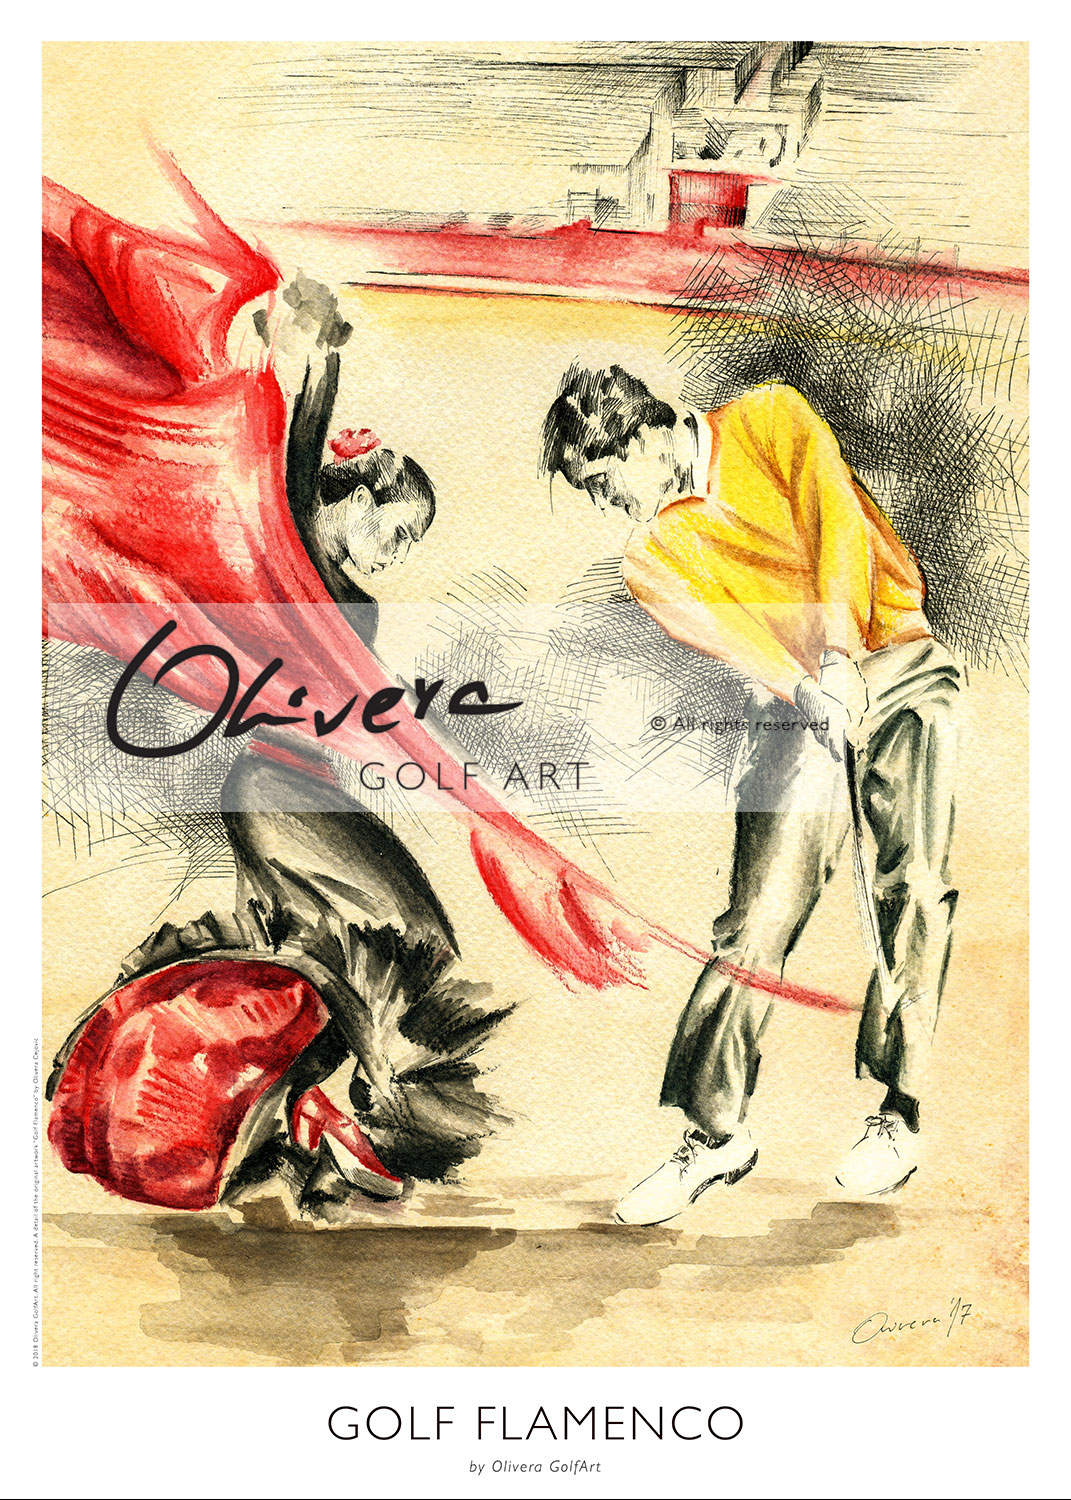 Flamenco Arte Y Ole Golf Flamenco Poster Olivera Golfart